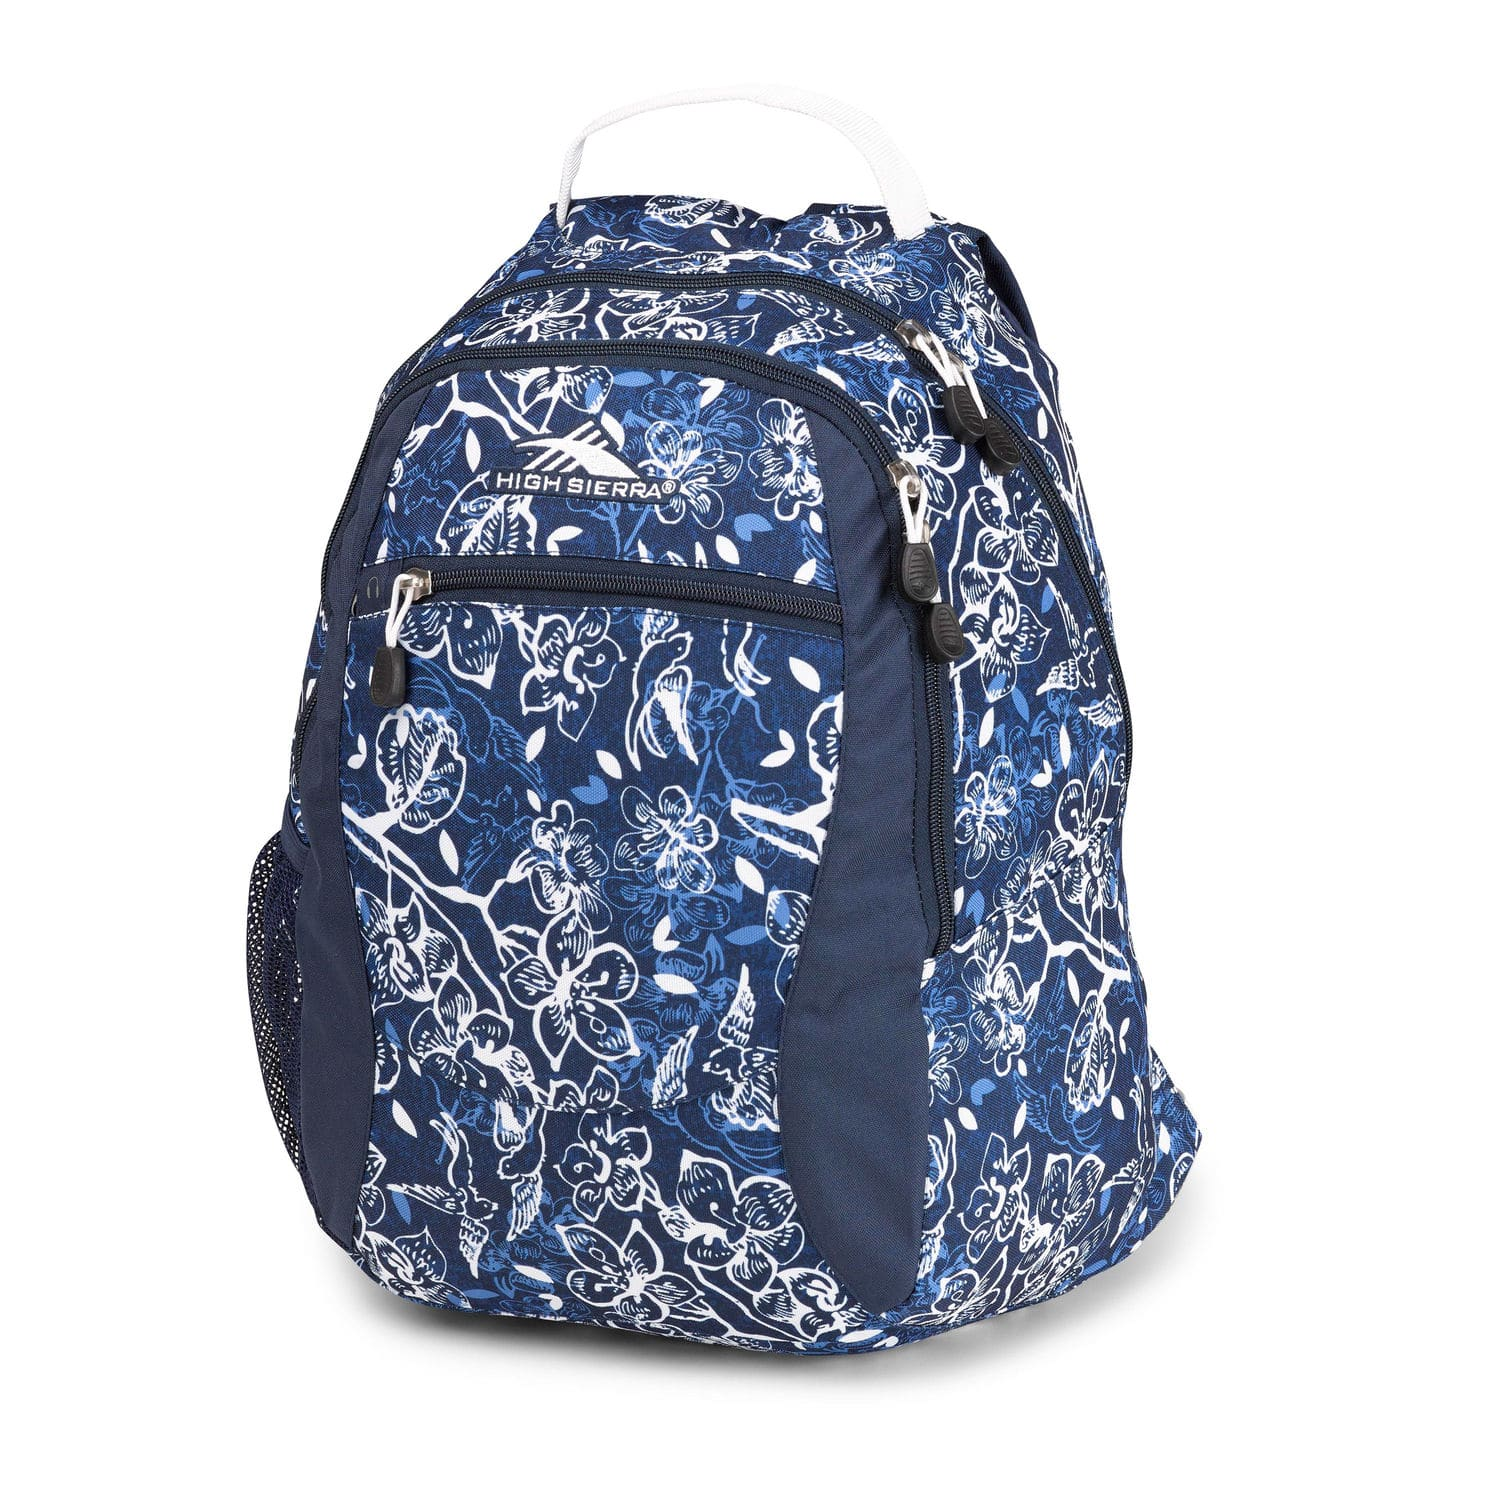 355bc1e0c High Sierra: 50% Off Clearance: Curve Backpack (various colors ...